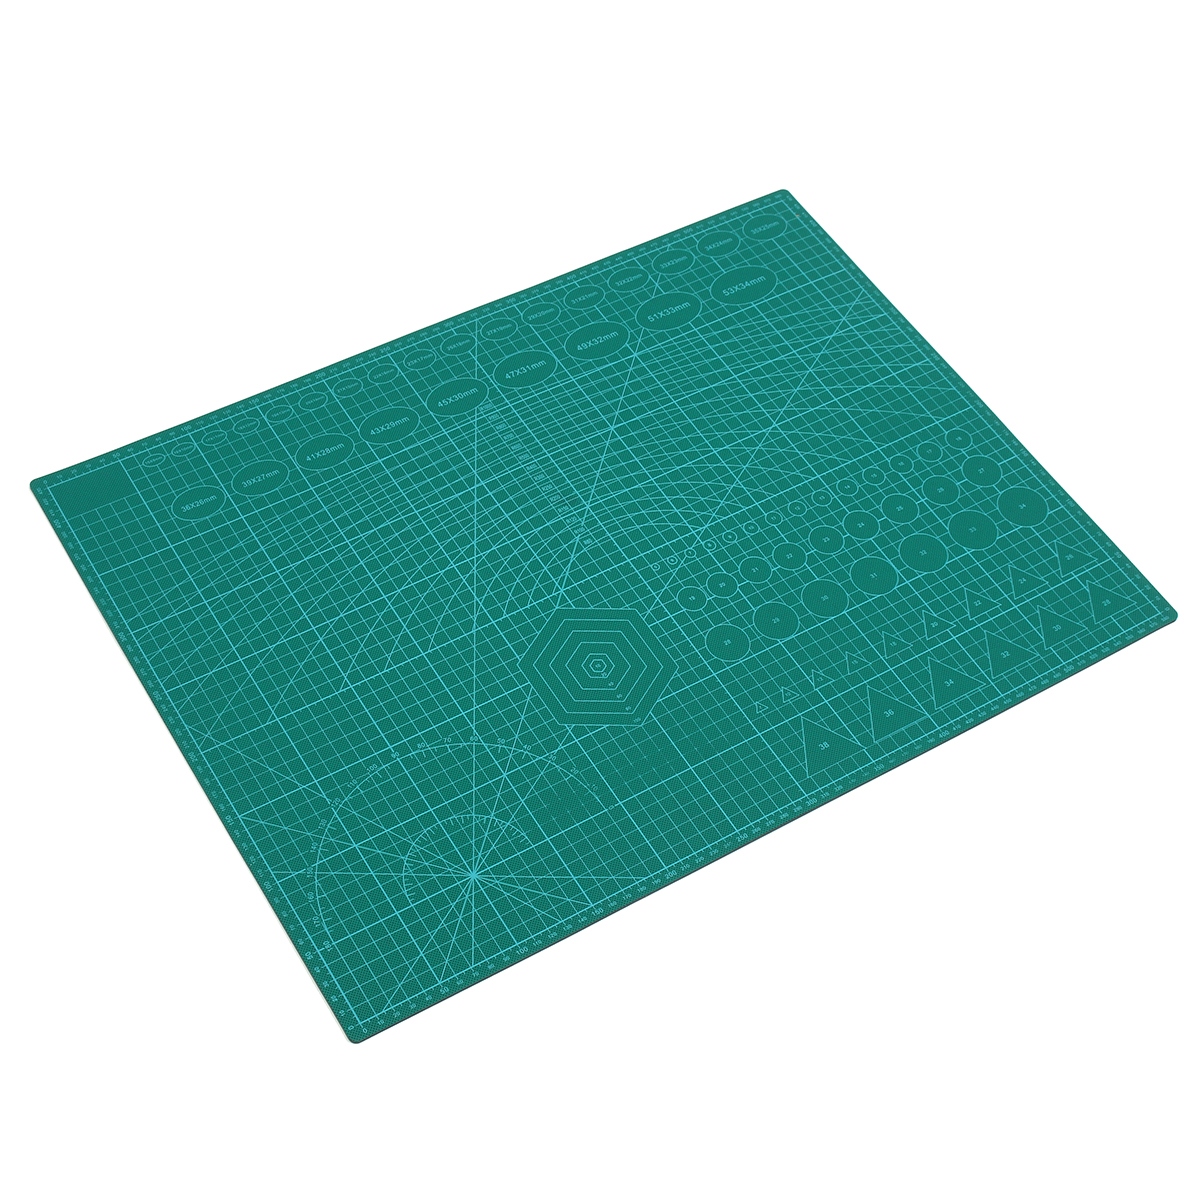 A2 pvc double printed self healing cutting mat craft for Cutting mat for crafts